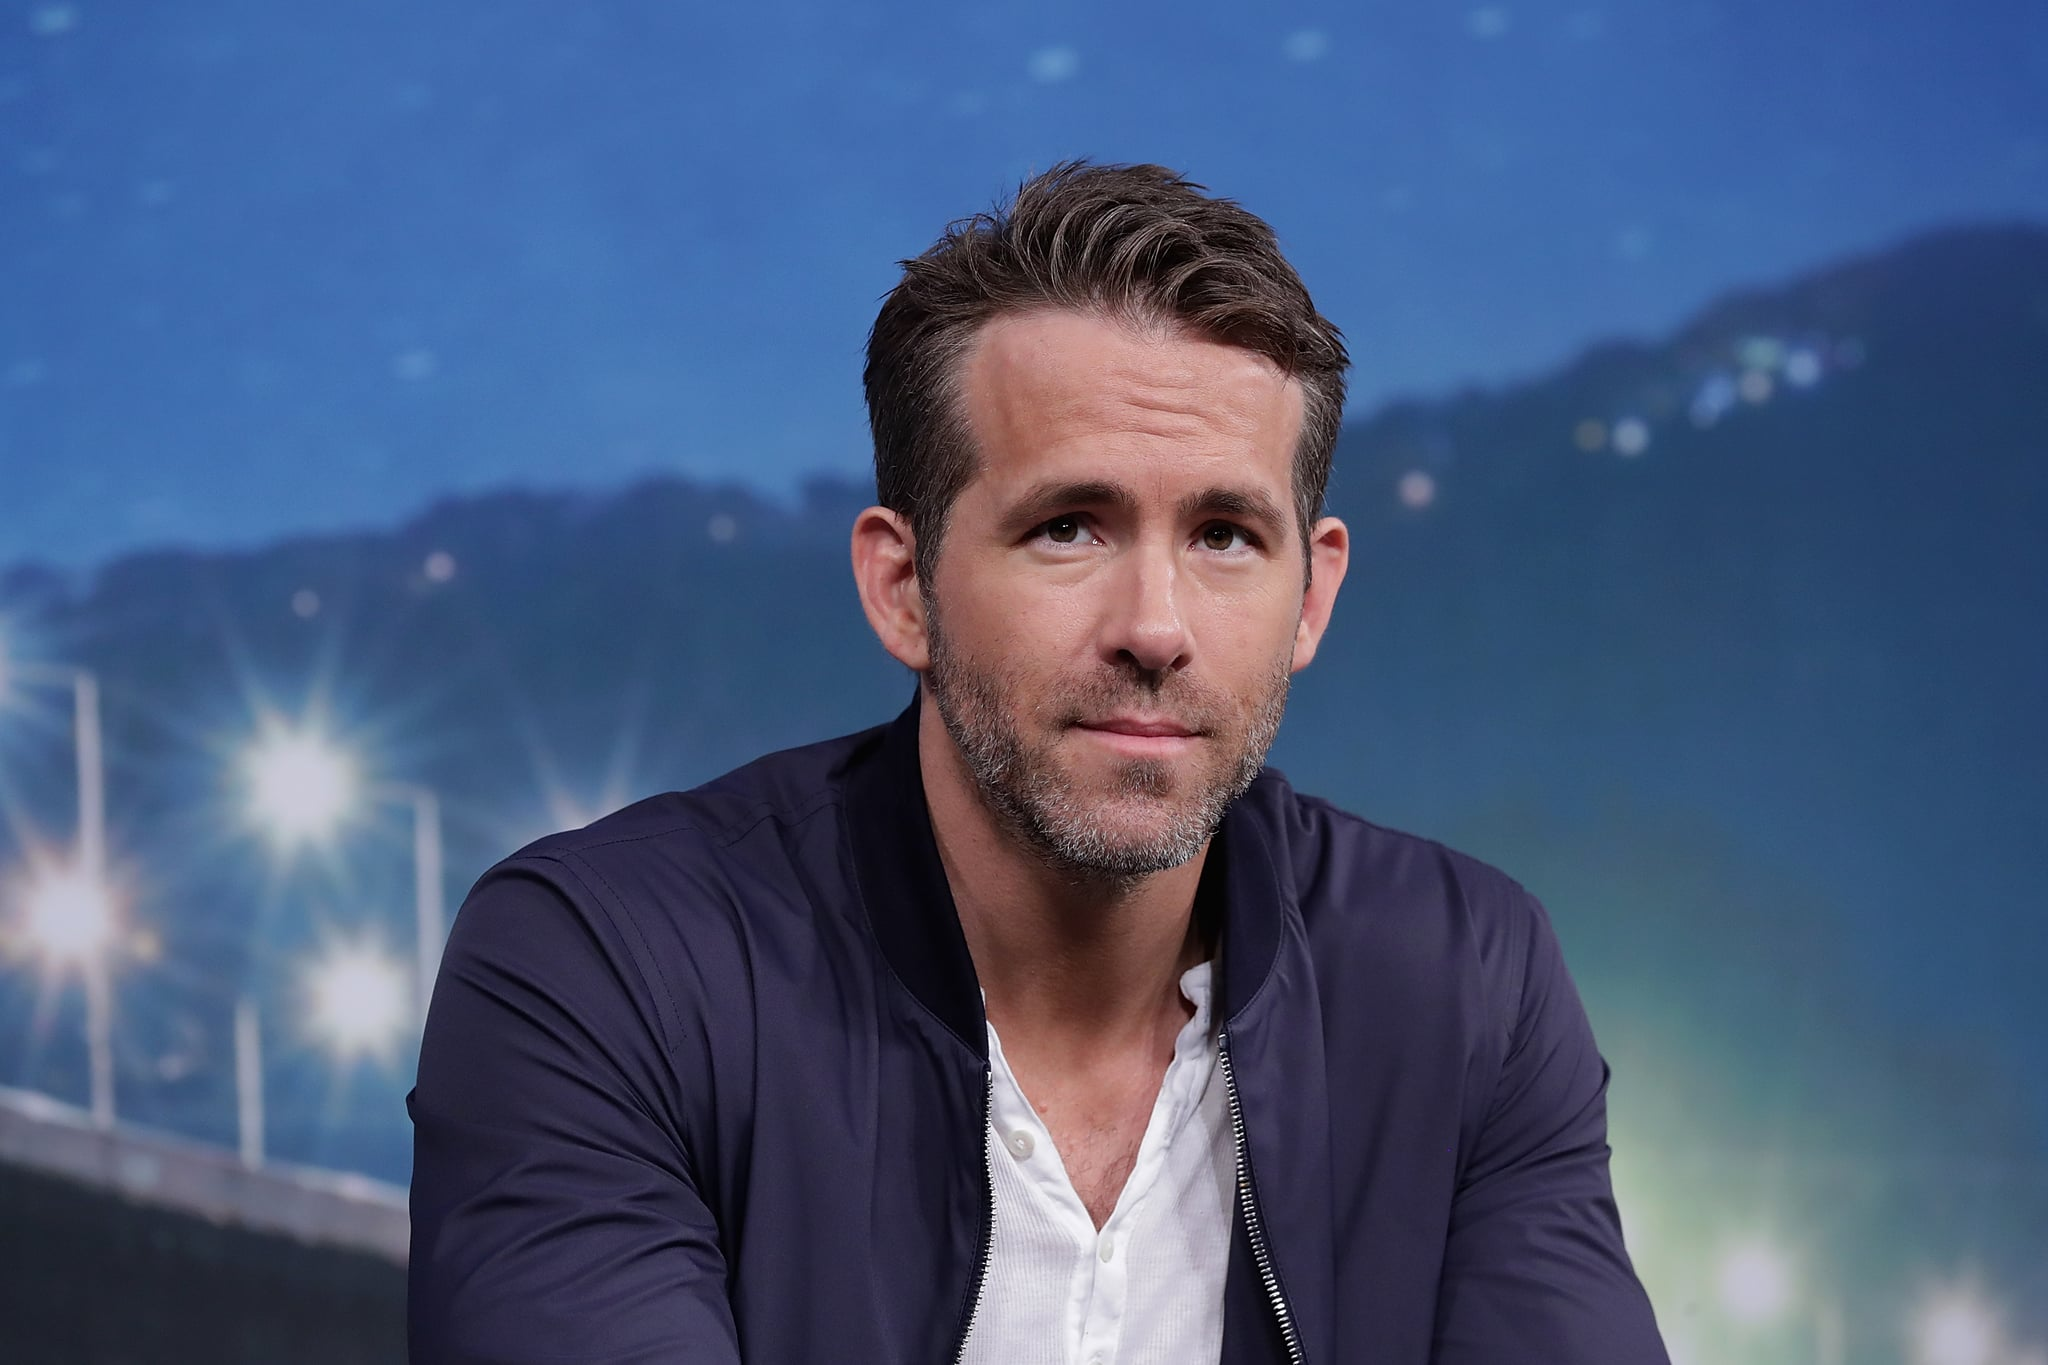 Ryan Reynolds Gets Candid About His Lifelong Battle With Anxiety — and How He Copes